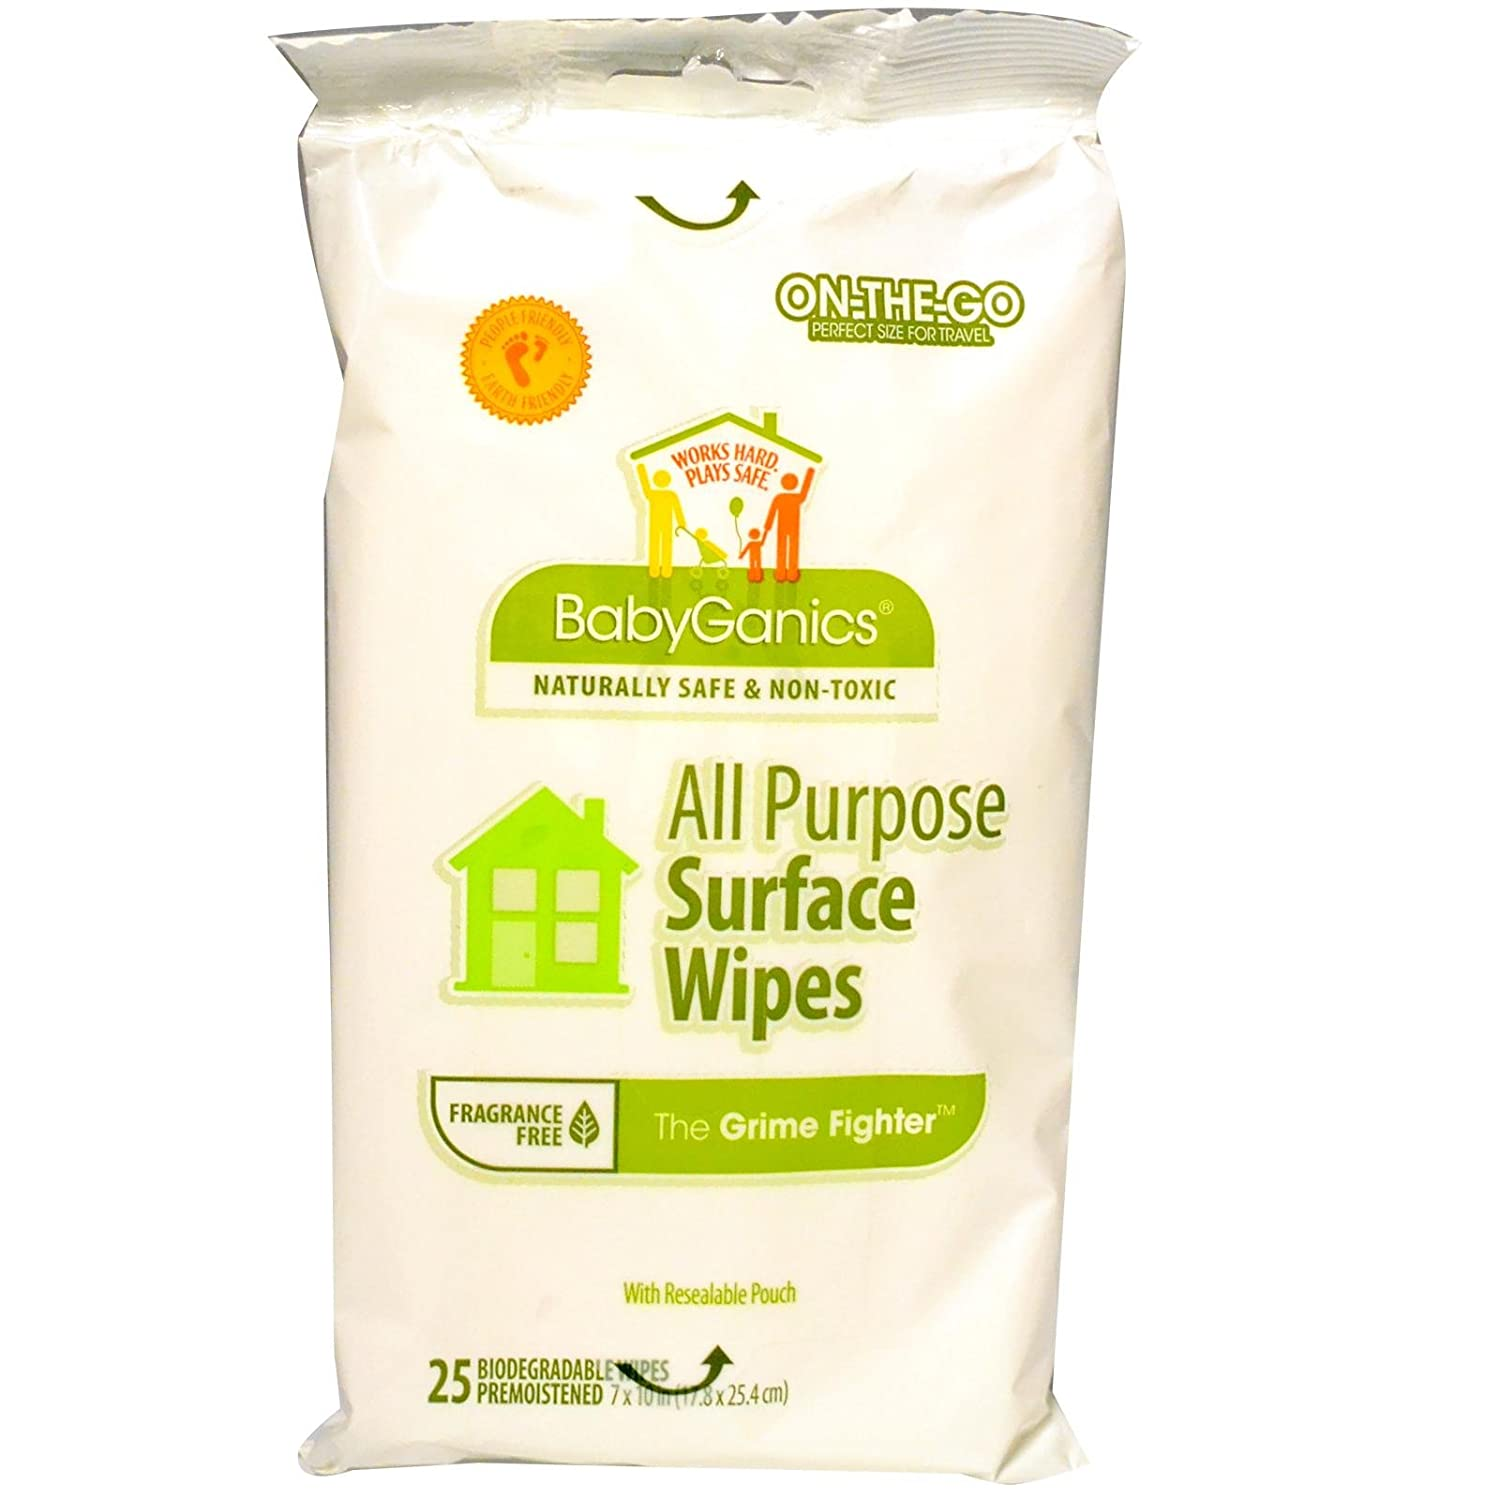 BabyGanics All Purpose Surface Wipes